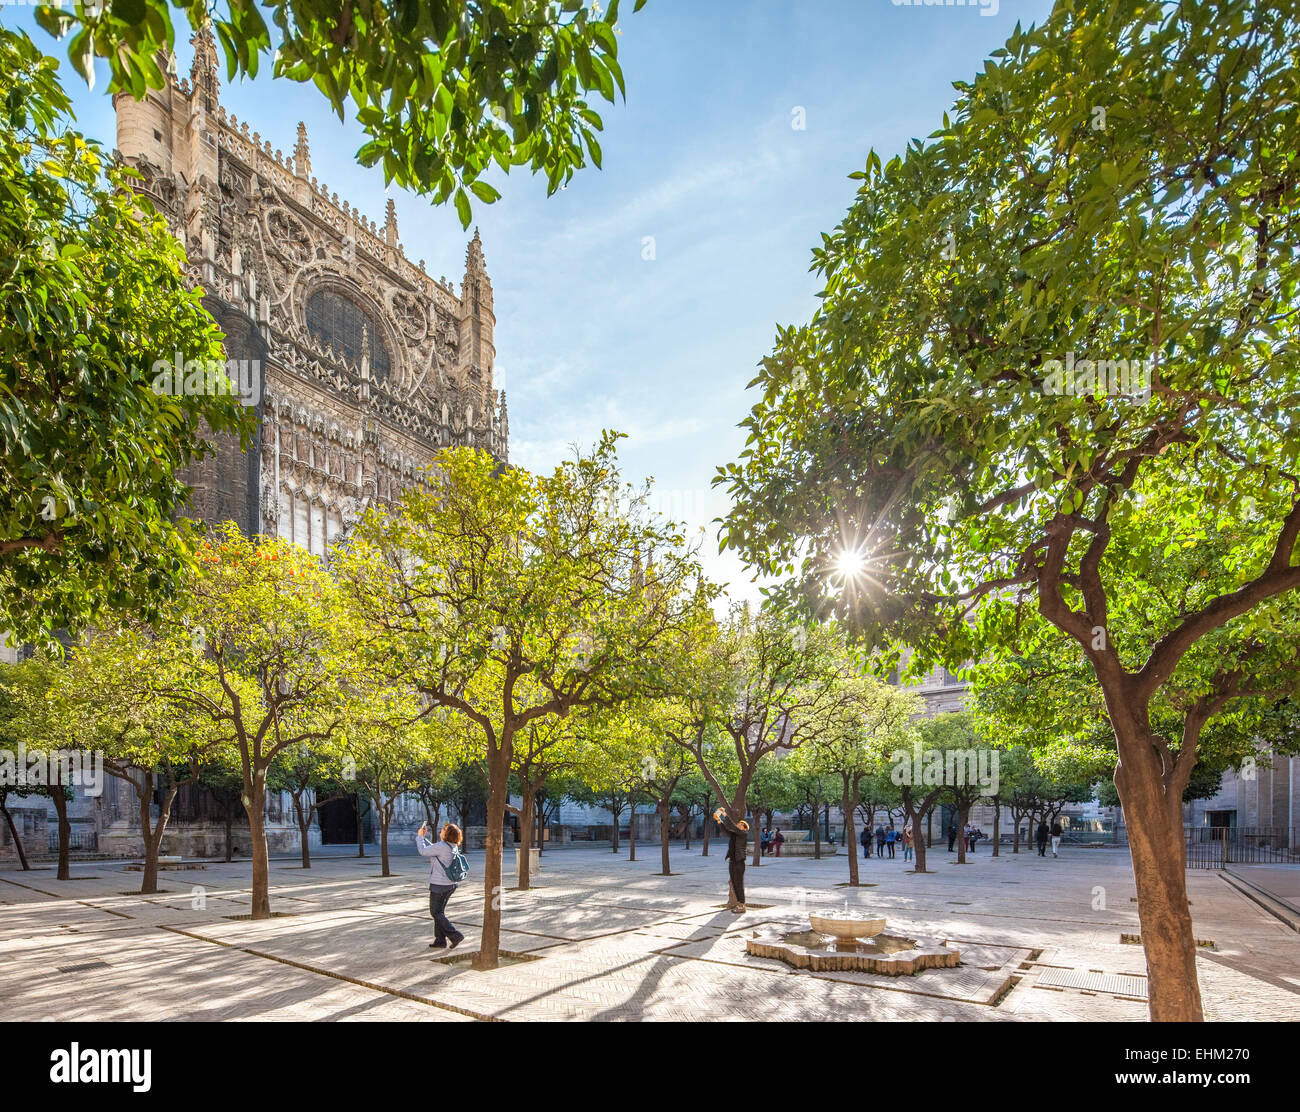 https://c7.alamy.com/comp/EHM270/seville-cathedral-patio-courtyard-with-orange-trees-with-oranges-and-EHM270.jpg